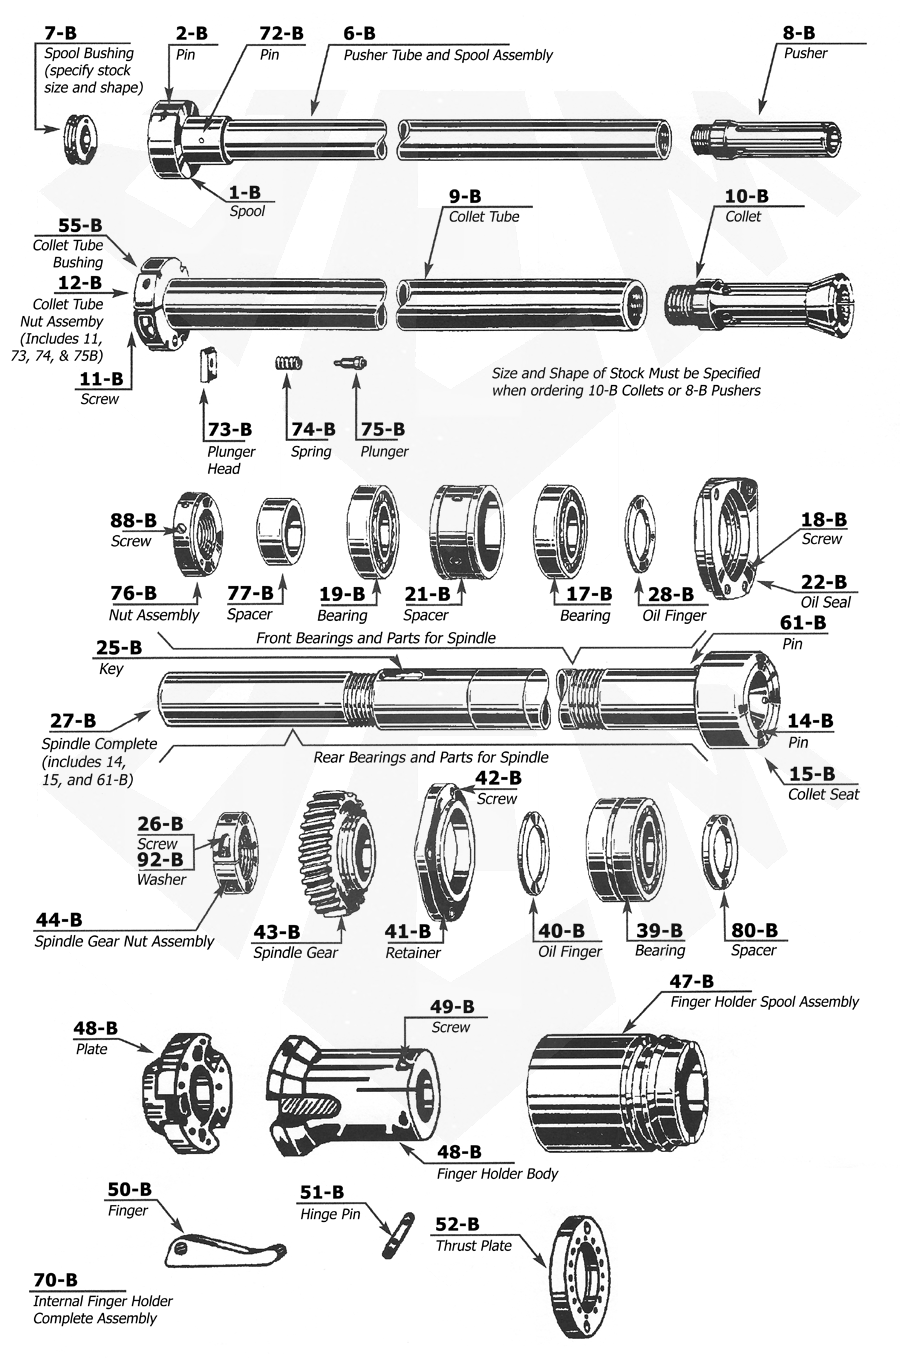 Acme Gridley 3/4 RA-8 Parts Catalog Group B